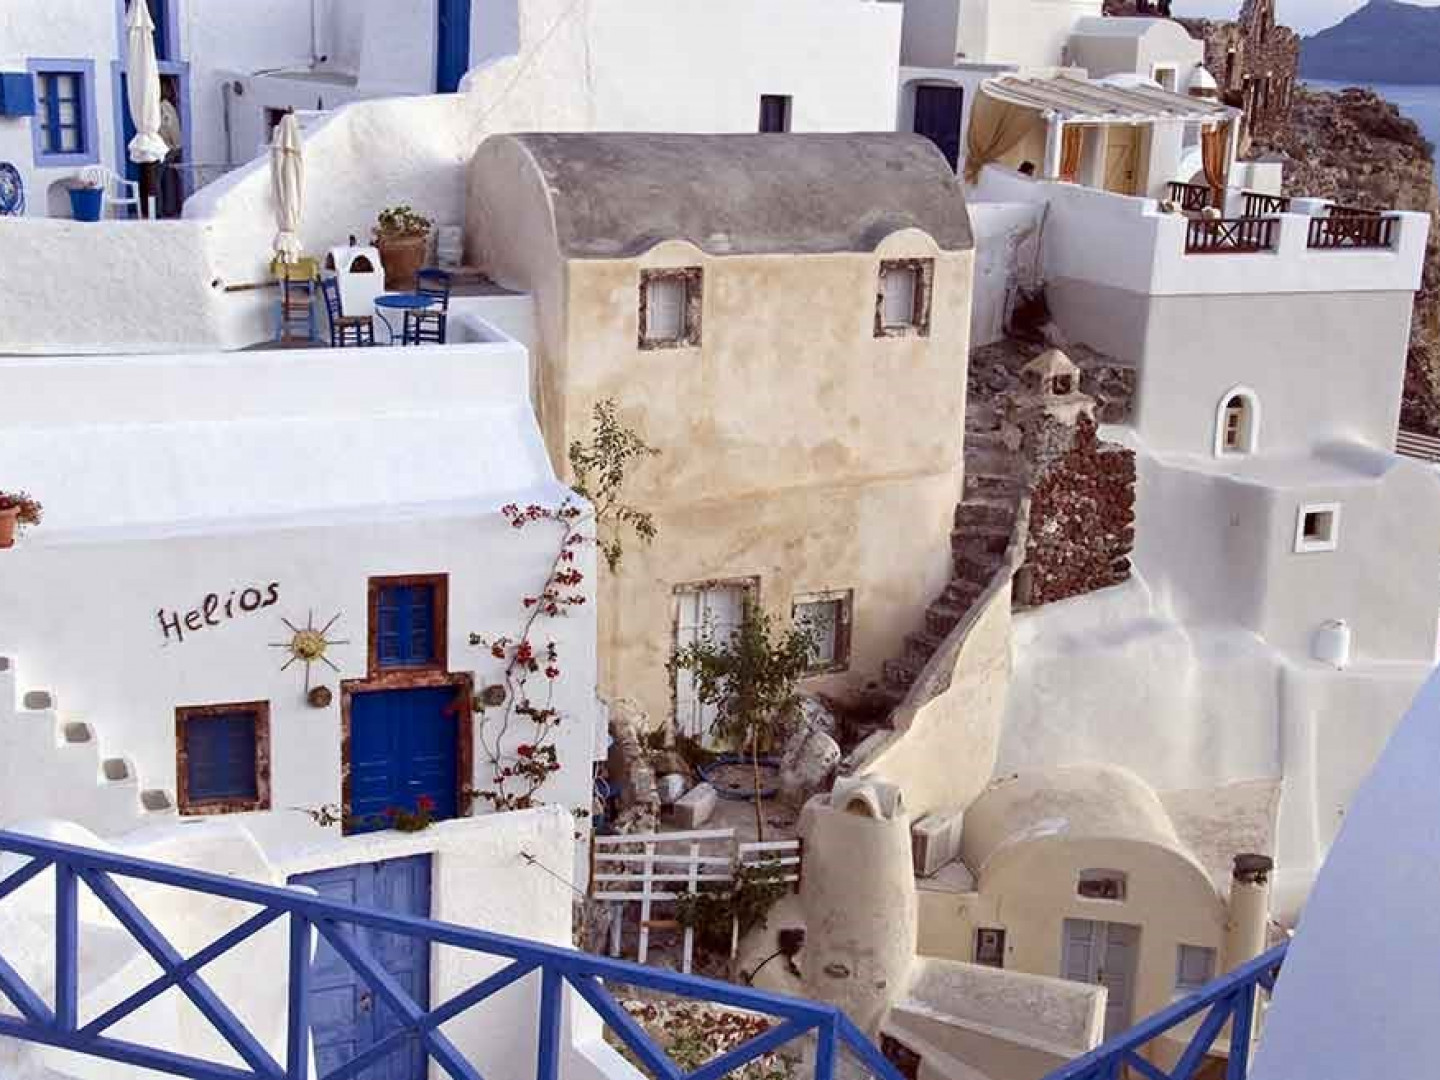 3. Greece's blue doors keep away evil spirits